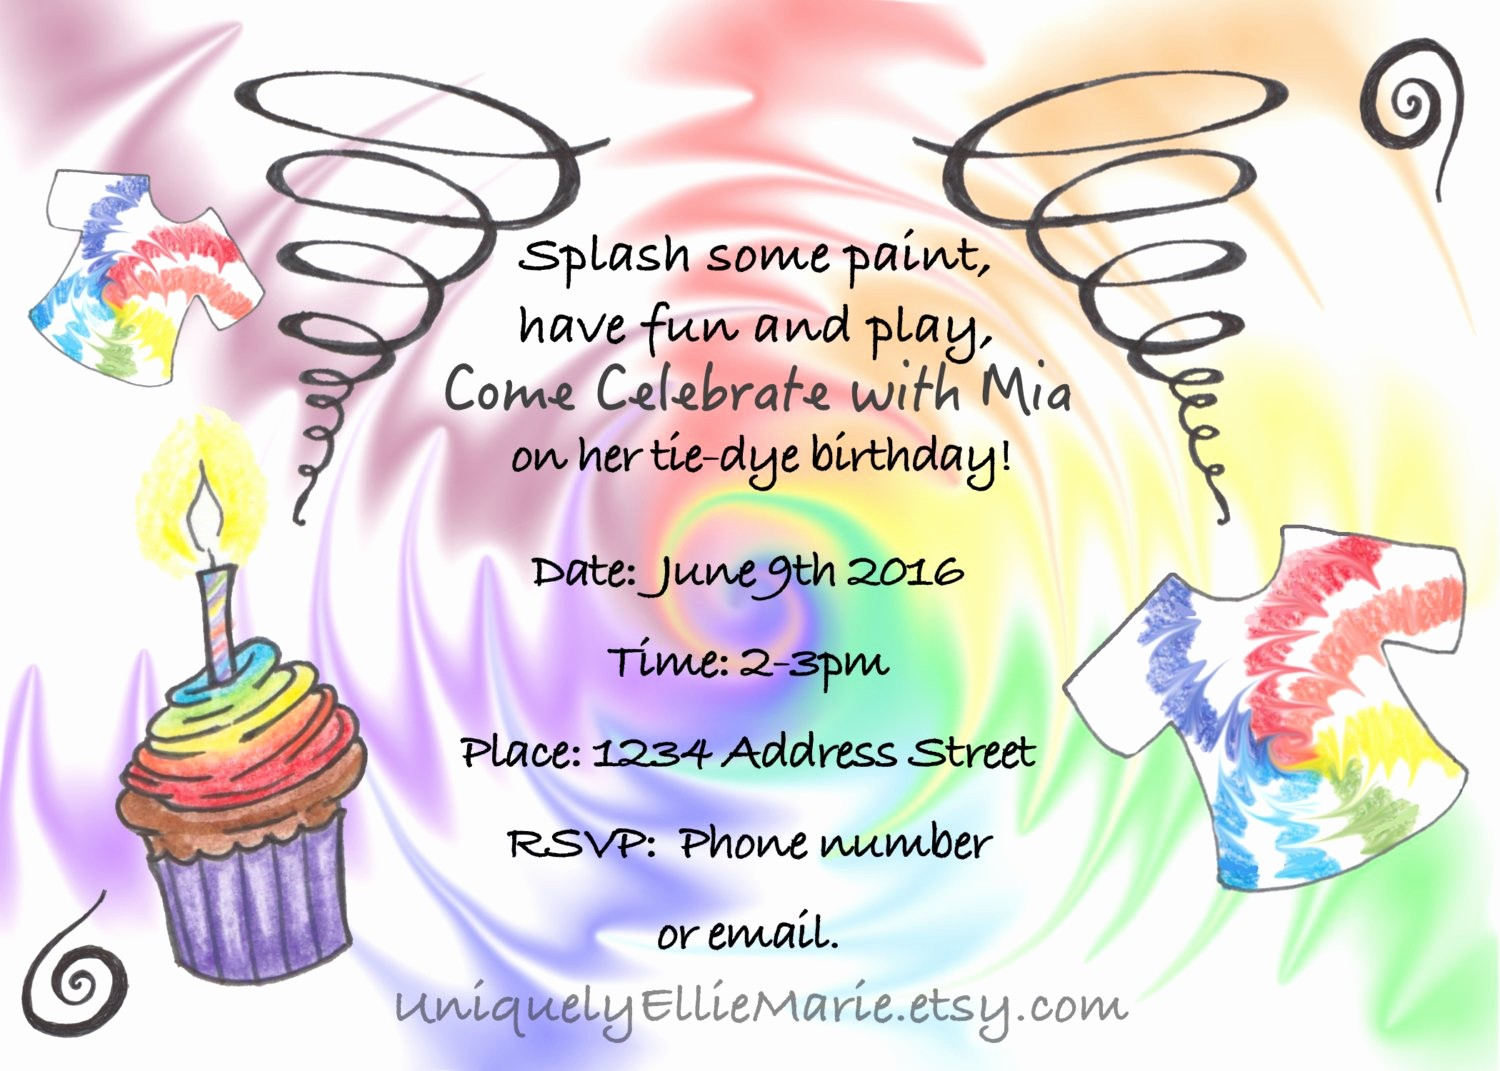 Tie Dye Party Invitations Printable Inspirational Tie Dye Birthday Invitation Printable Tie Dye Shirt Party